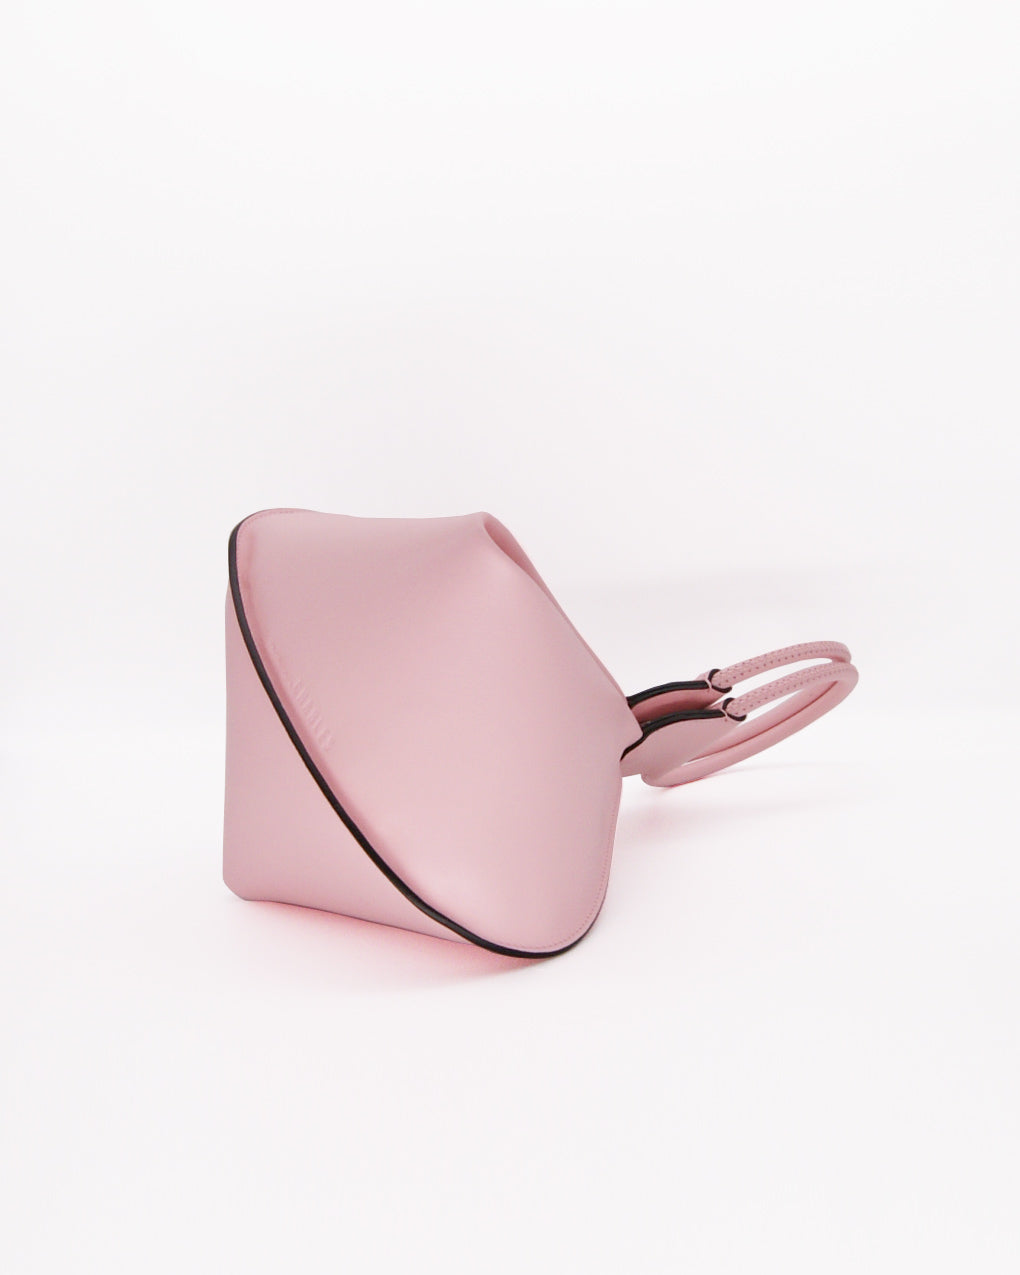 Lady Gwen Bag Powder Pink